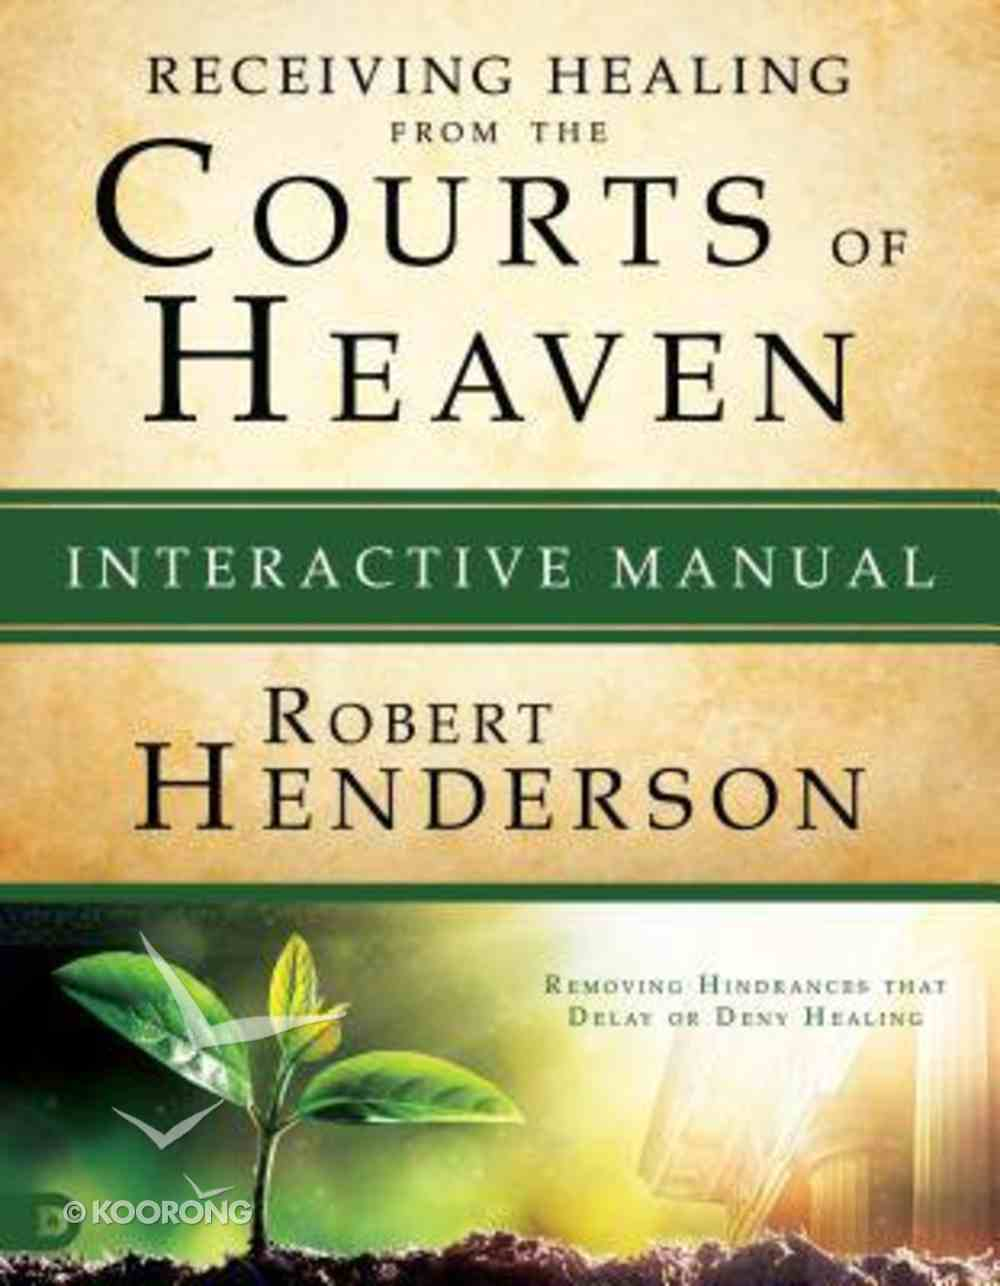 Receiving Healing From the Courts of Heaven - Removing Hindrances That Delay Or Deny Your Healing (Interactive Manual) (#03 in Official Courts Of Heaven Series) Paperback